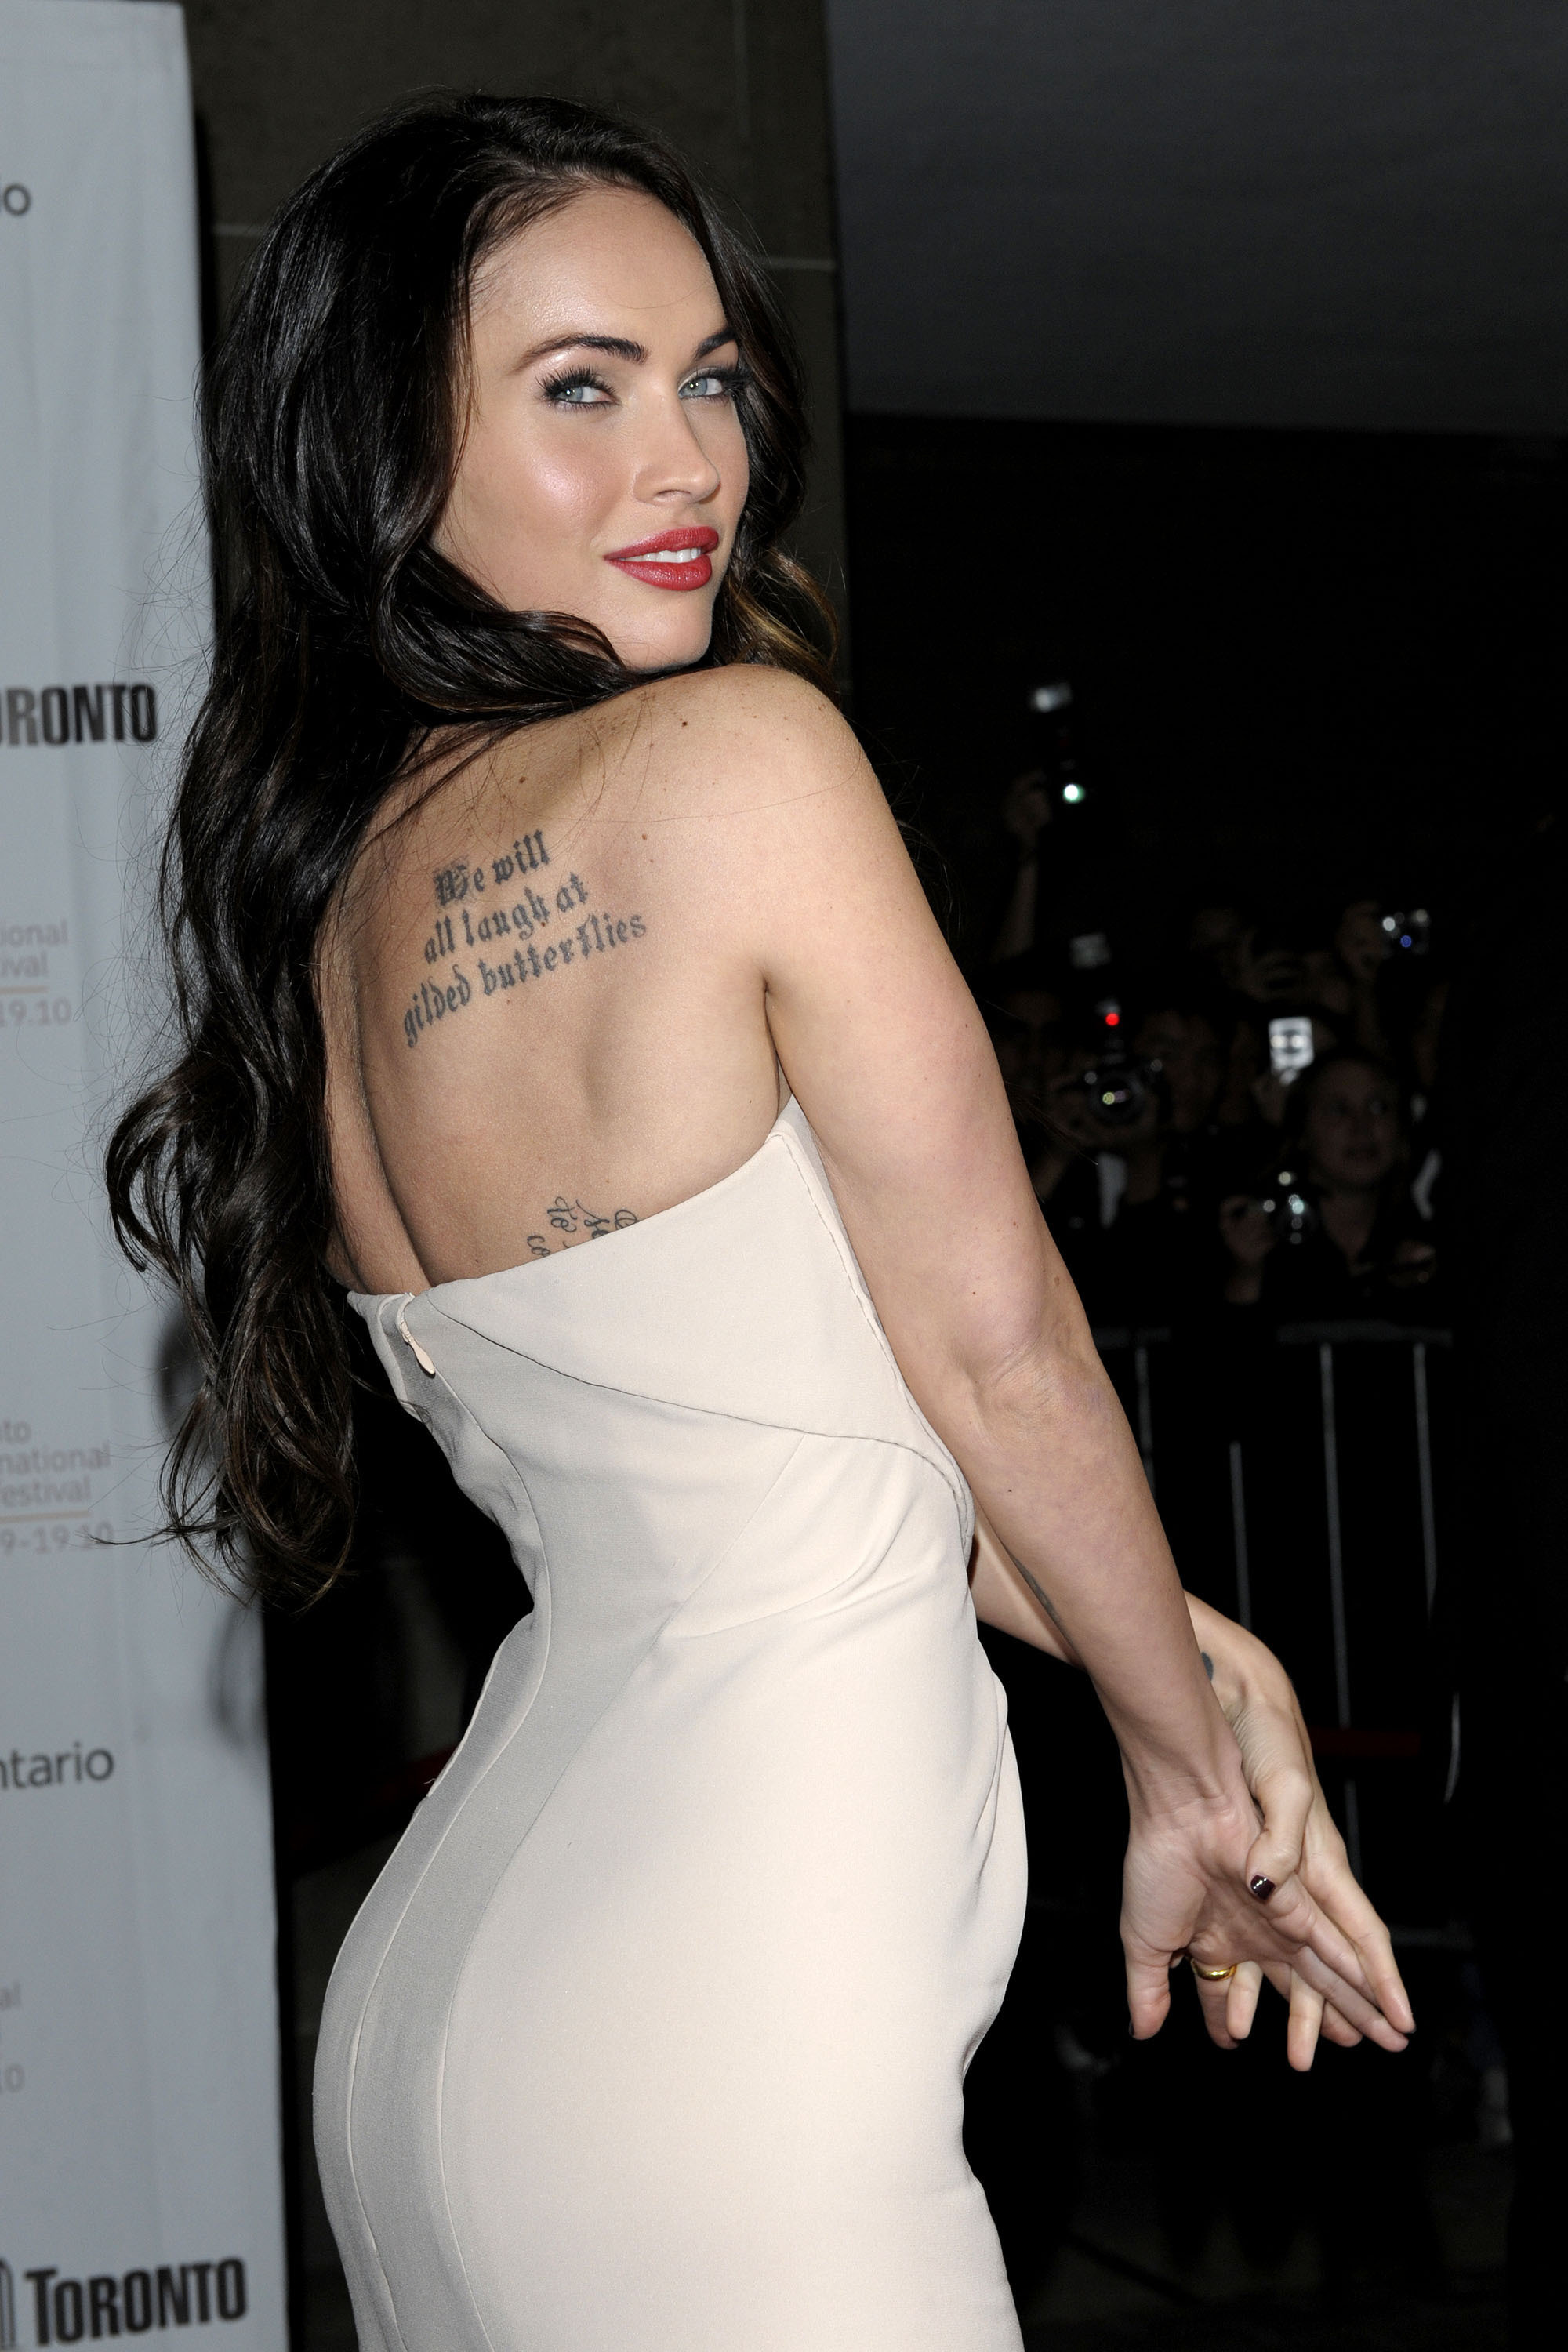 Megan Fox Tattoo - Megan's collection of tattoos is extensive